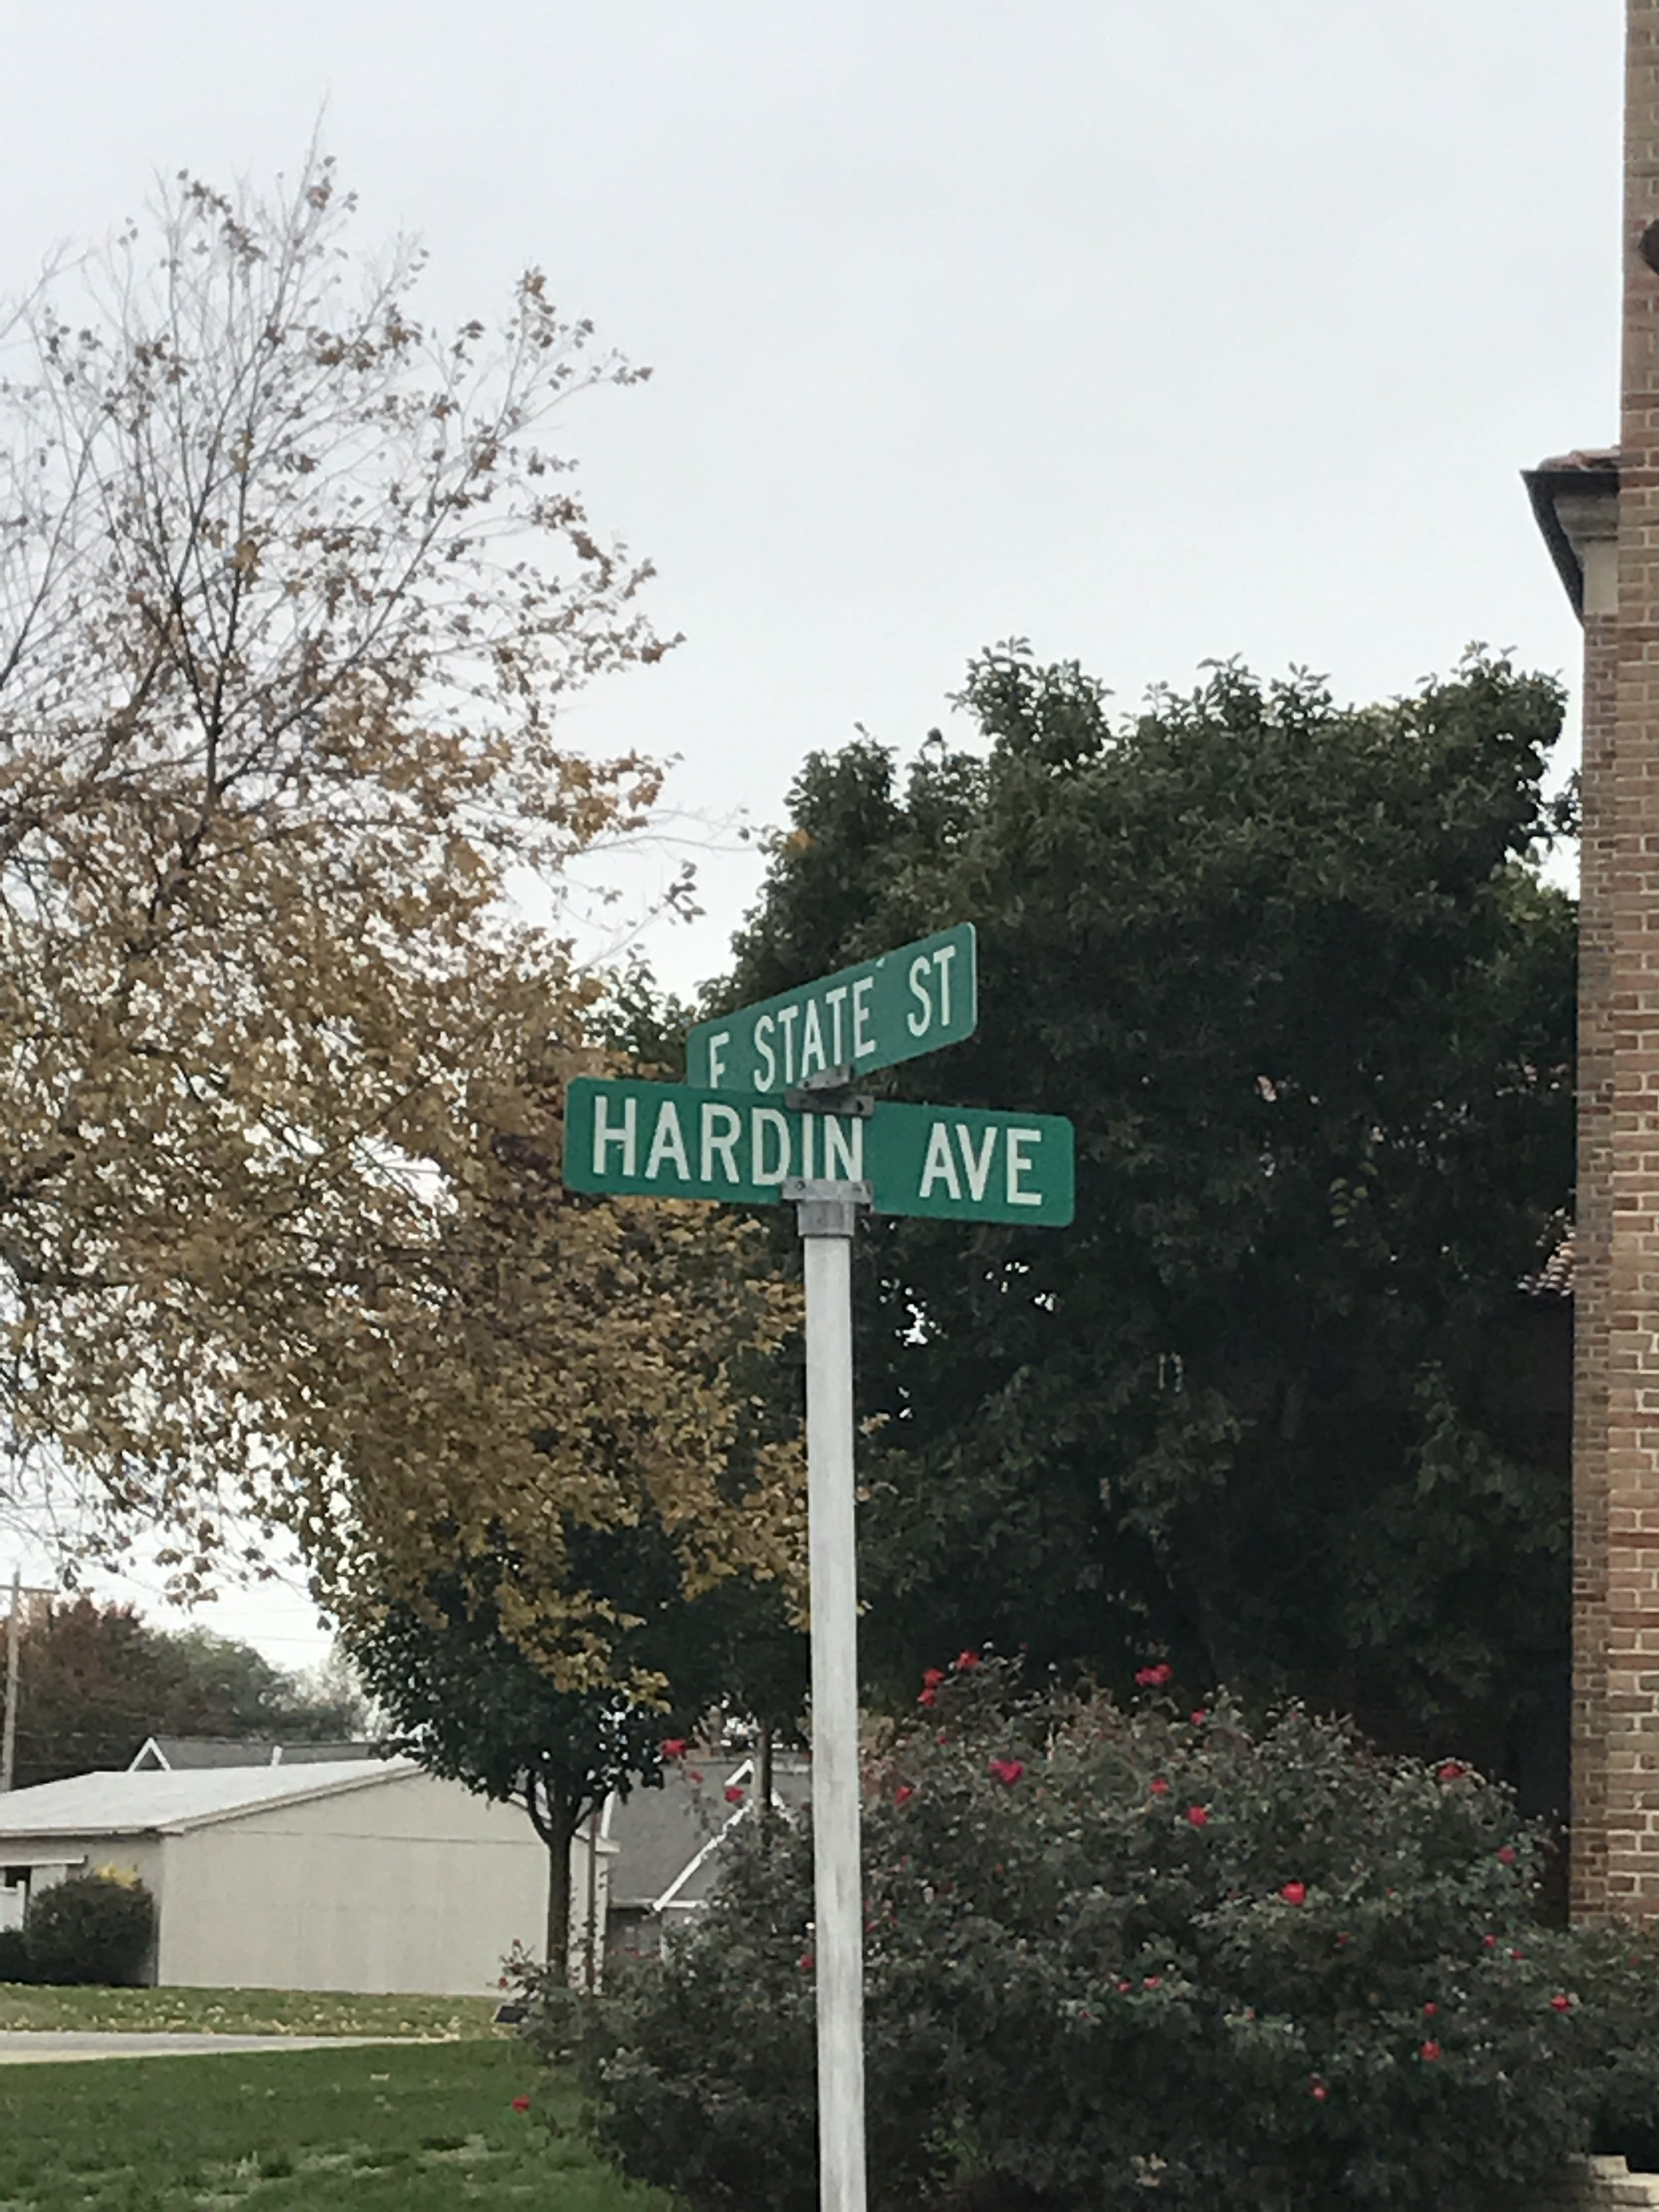 The site is right beside this intersection, we have Hardin Avenue after John J. Hardin.